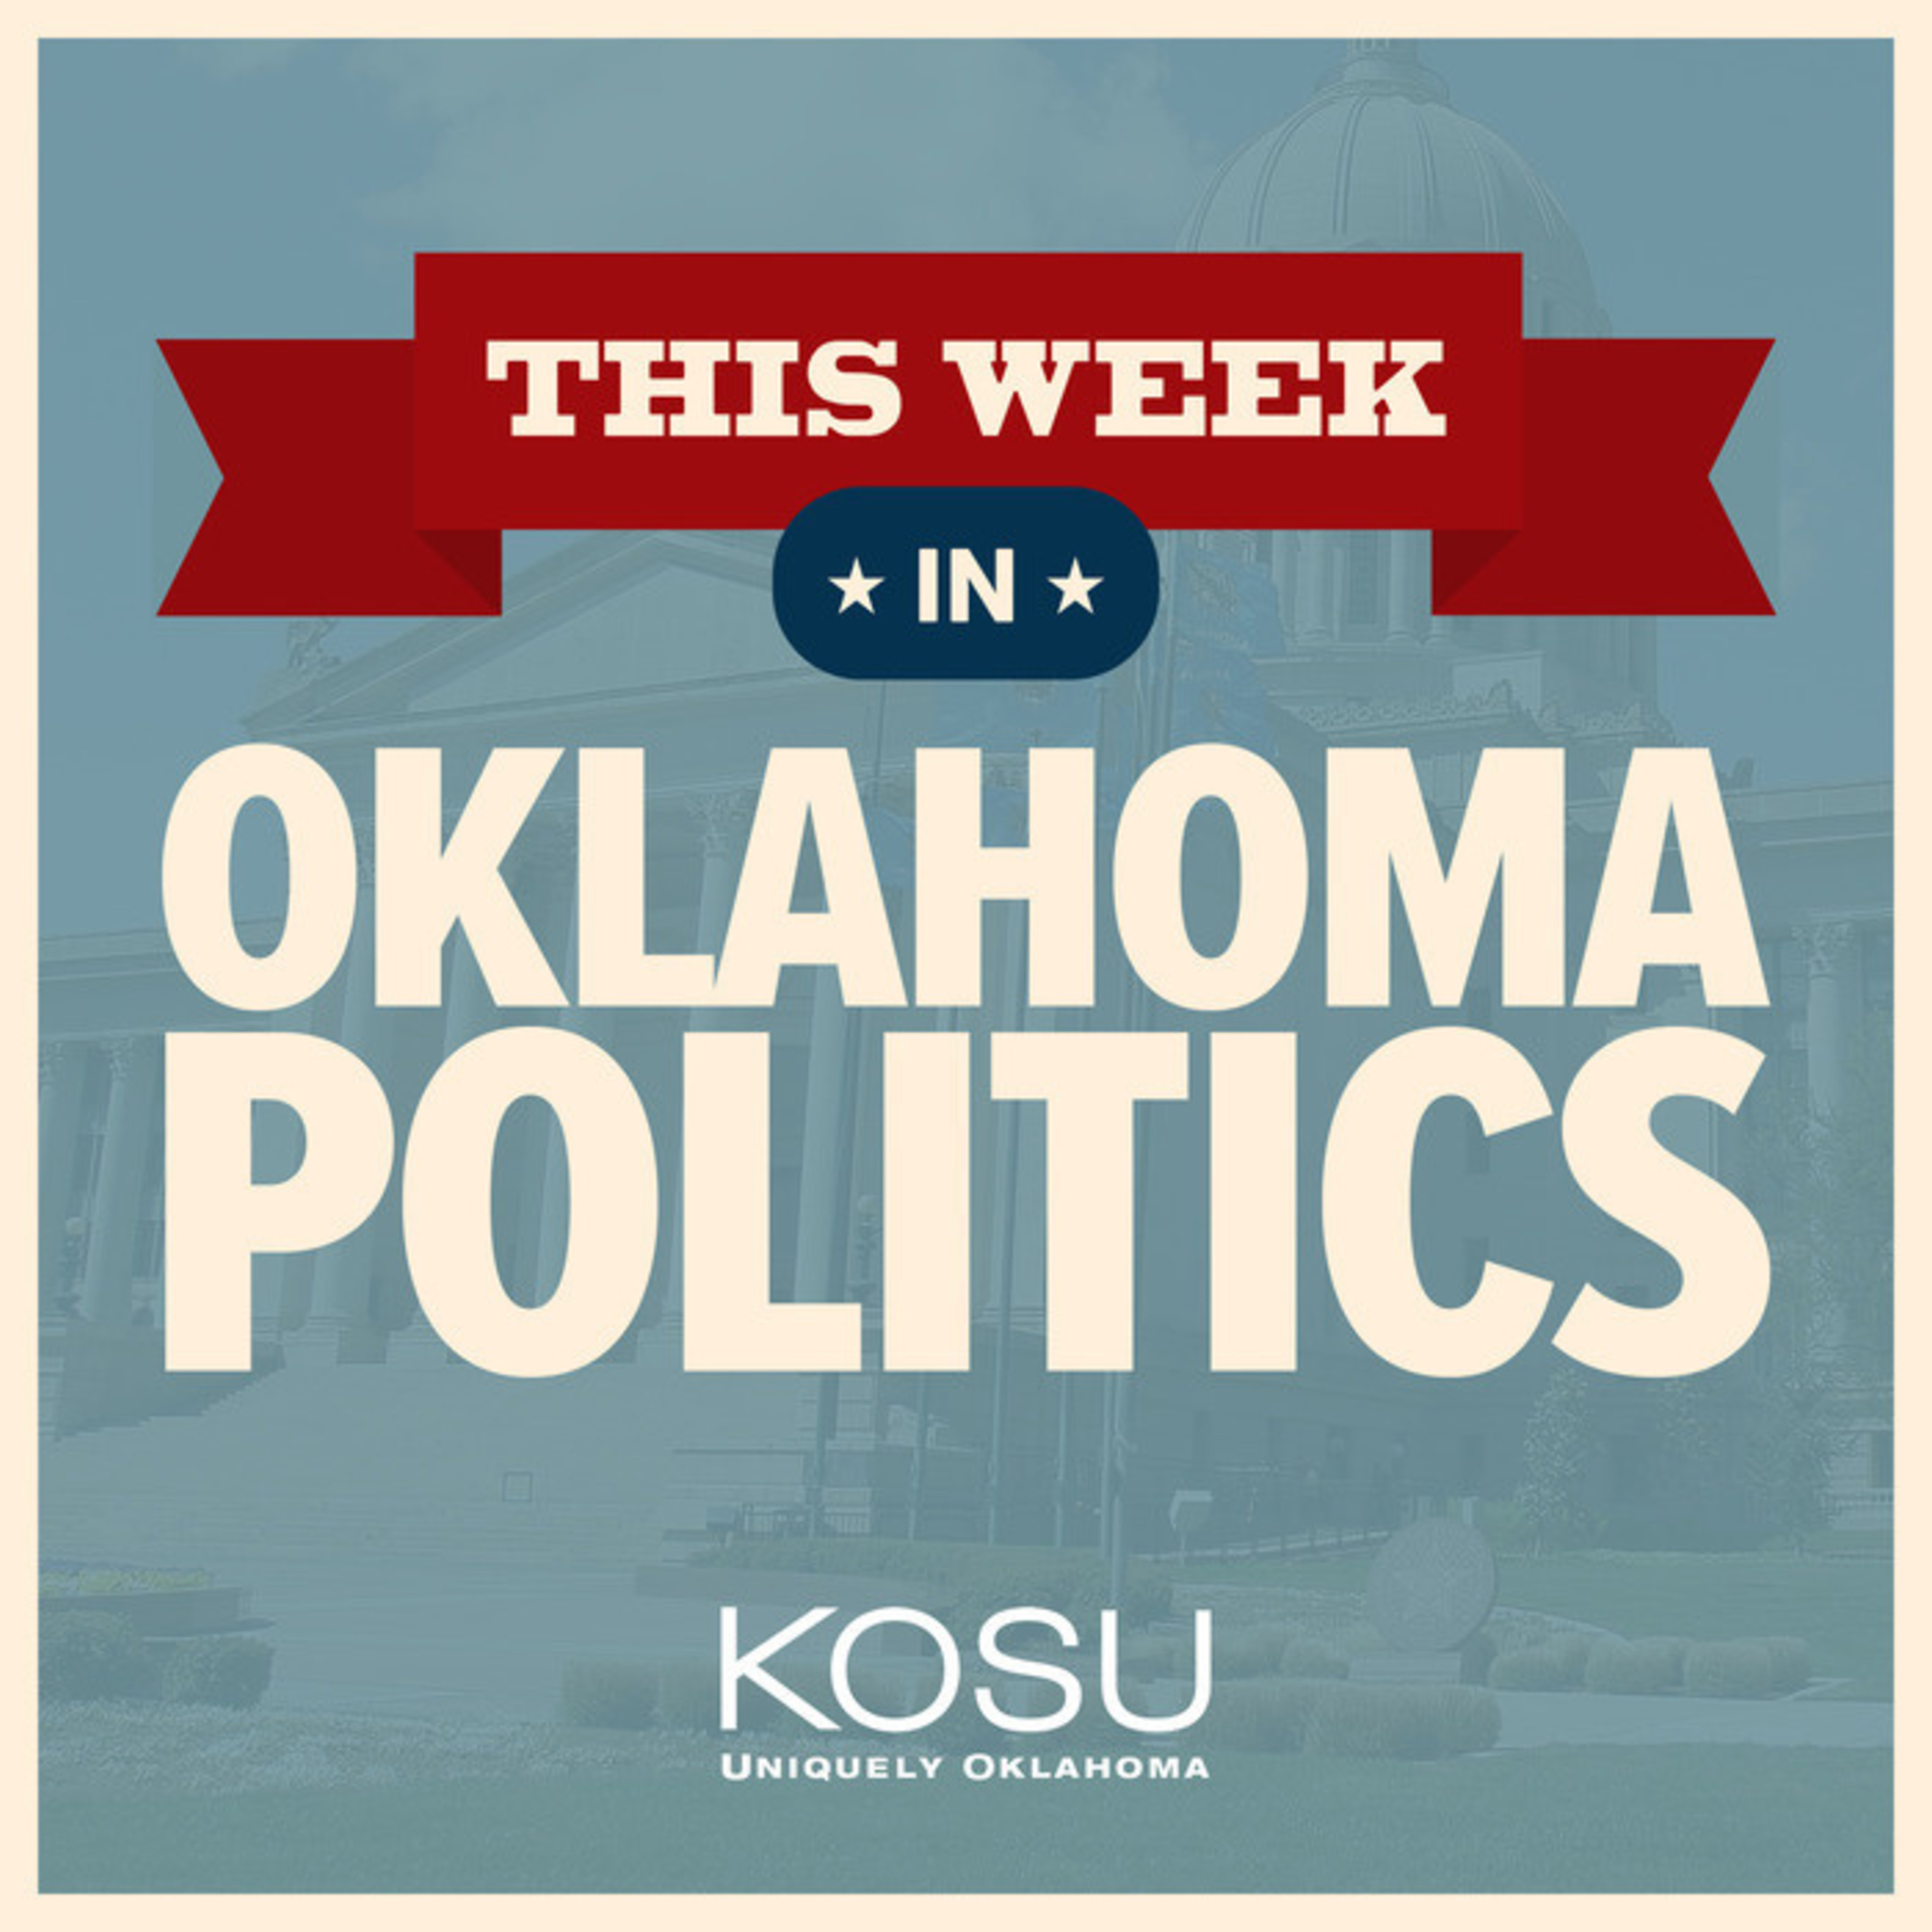 This Week in Oklahoma Politics | Listen Free on Castbox